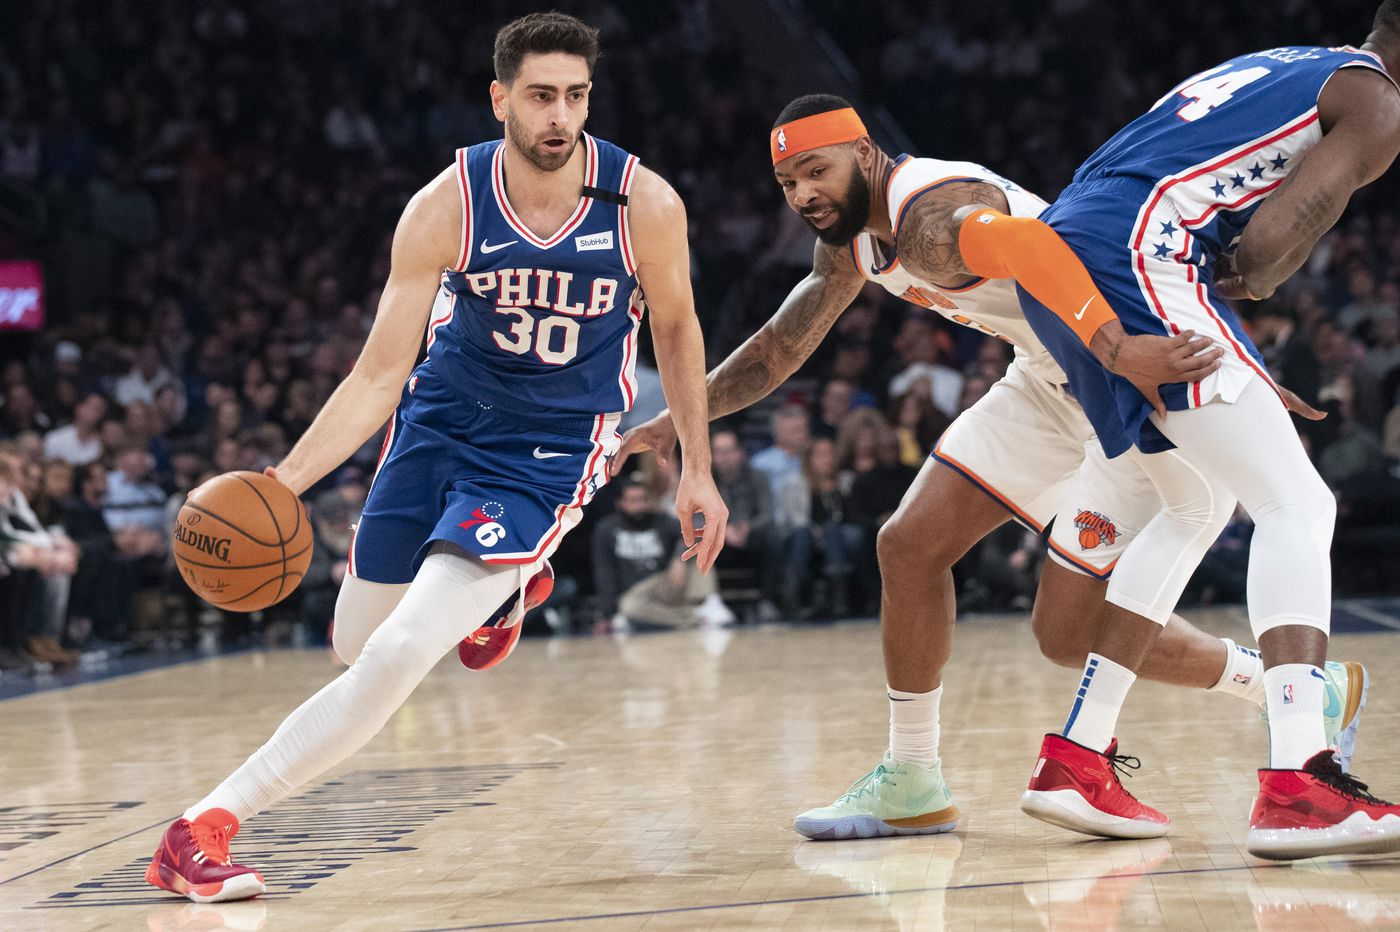 Furkan Korkmaz completes a weekend to remember in the Sixers' 90-87 win at New York